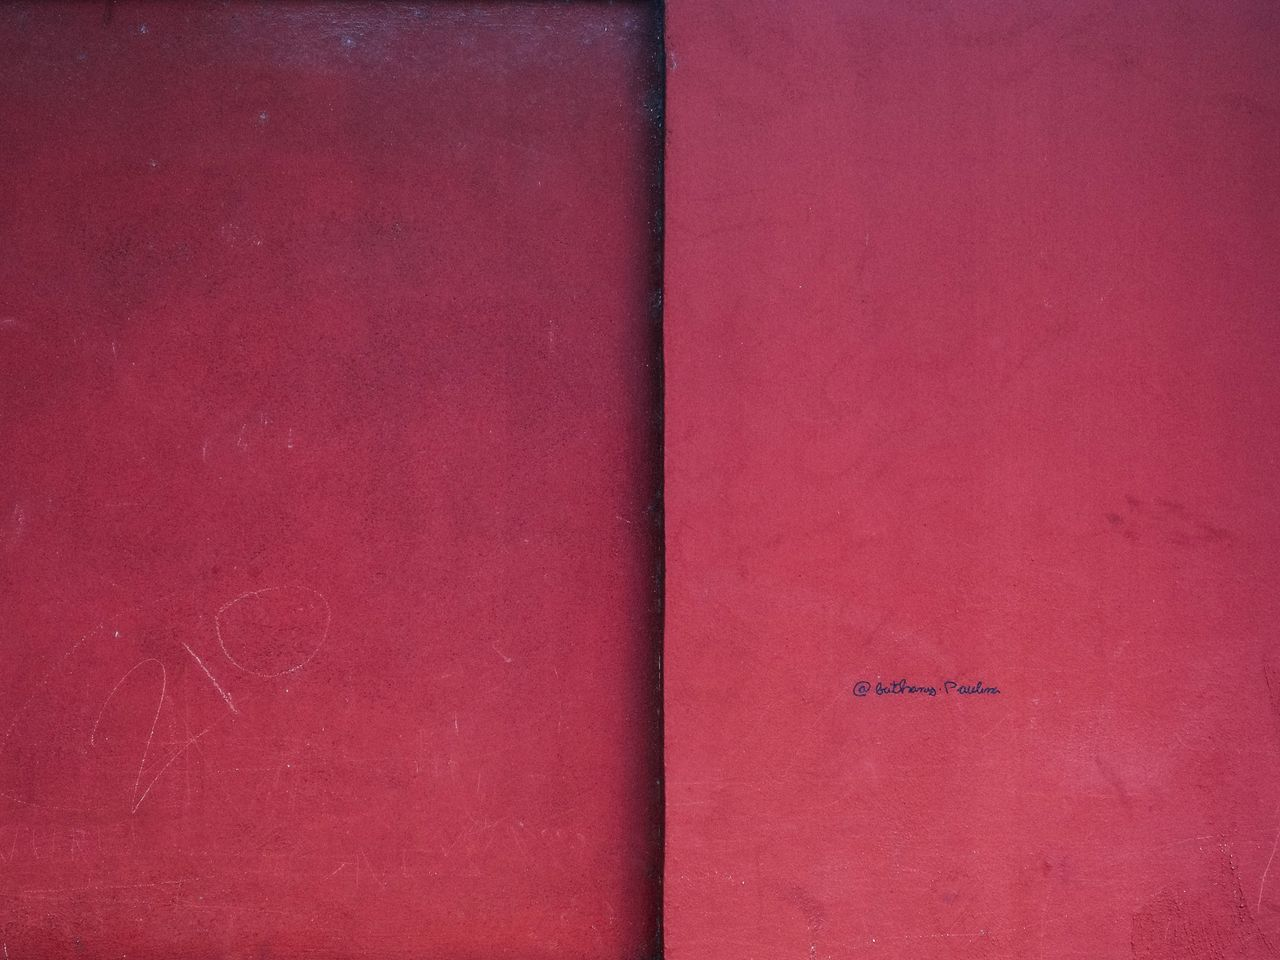 Close-up of maroon hardcover books